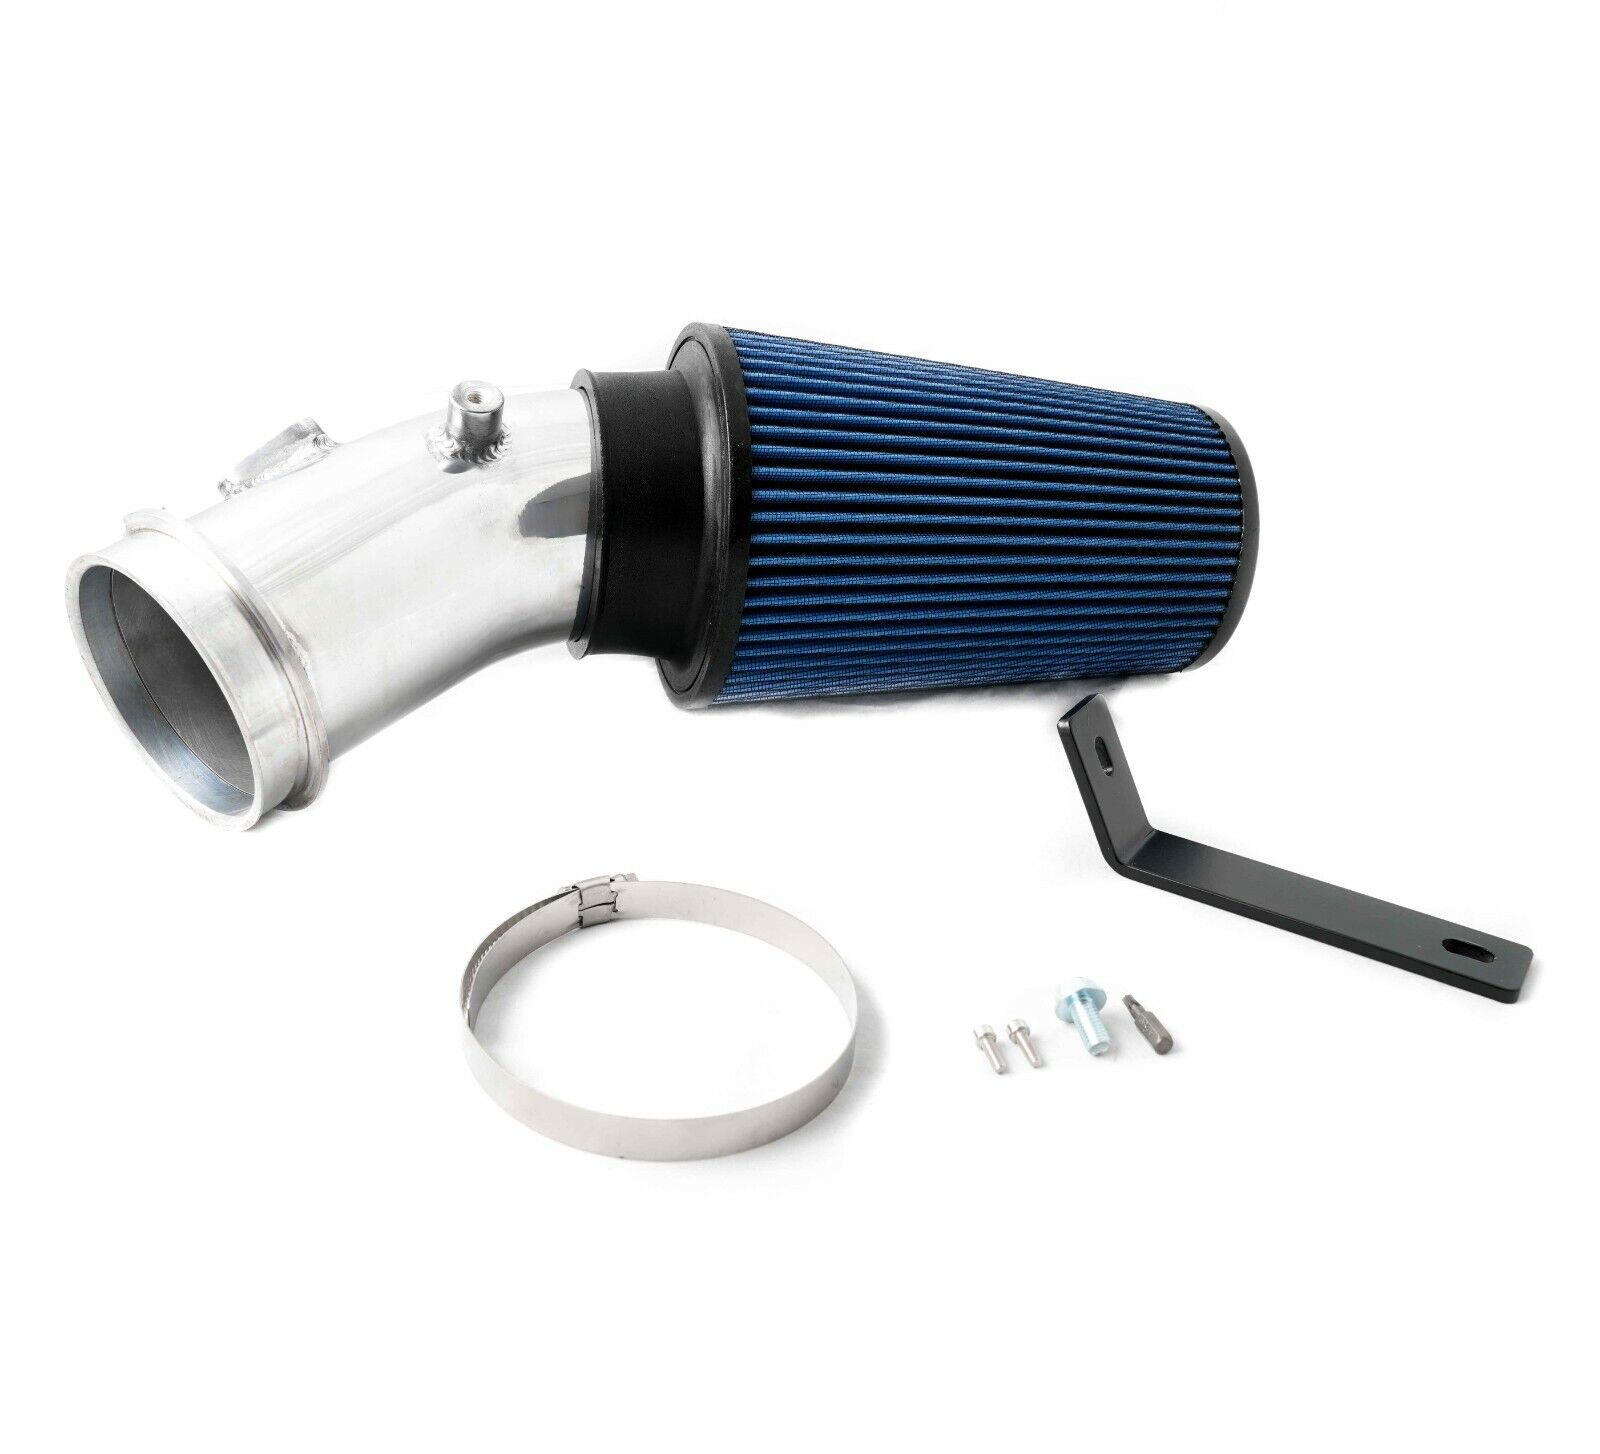 Oiled Cold Air Intake Kit For 11-16 Ford F250 F350 F450 Powerstroke Diesel 6.7L